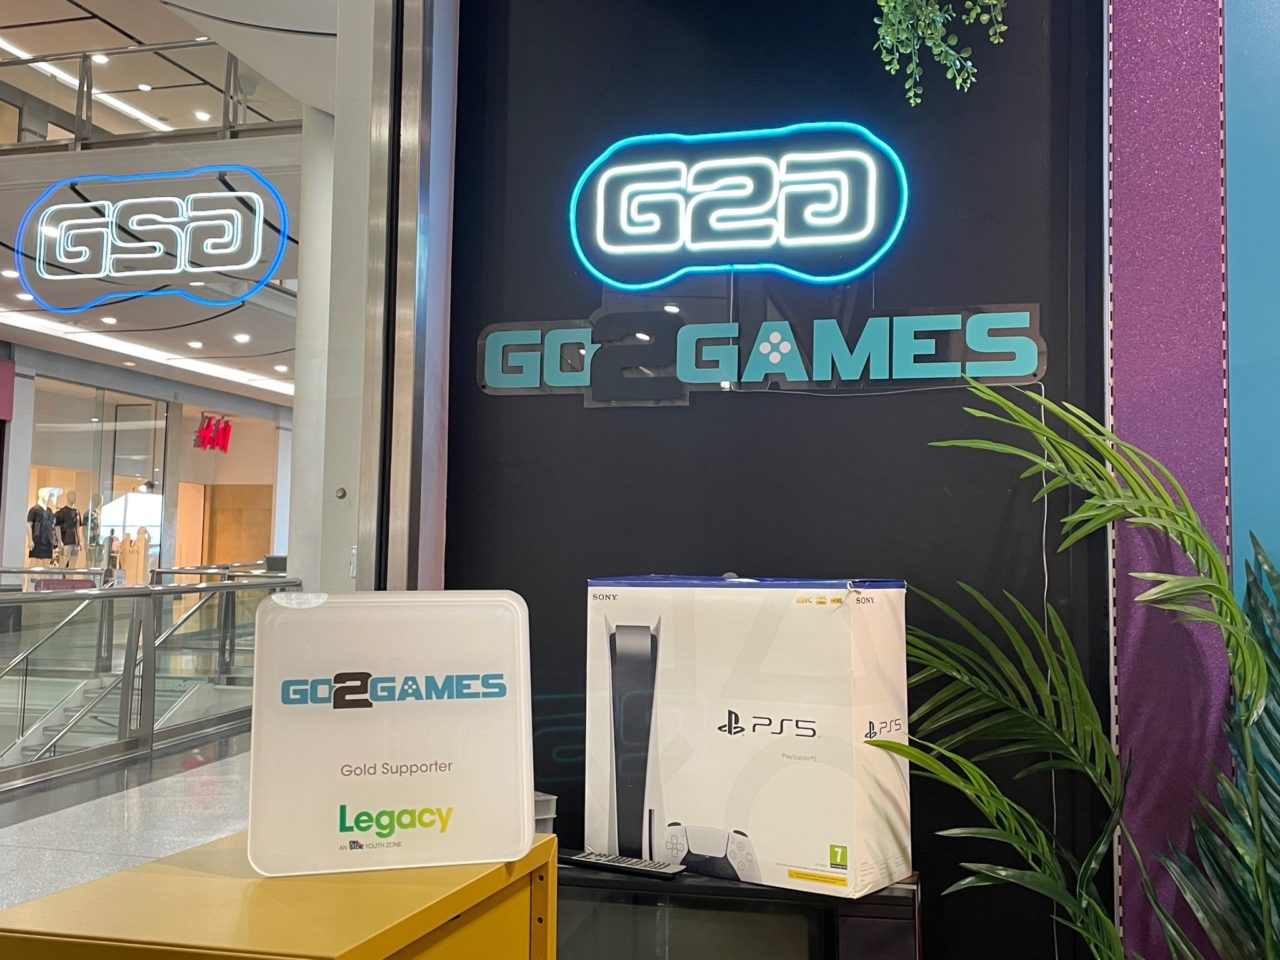 go2games gold supporter